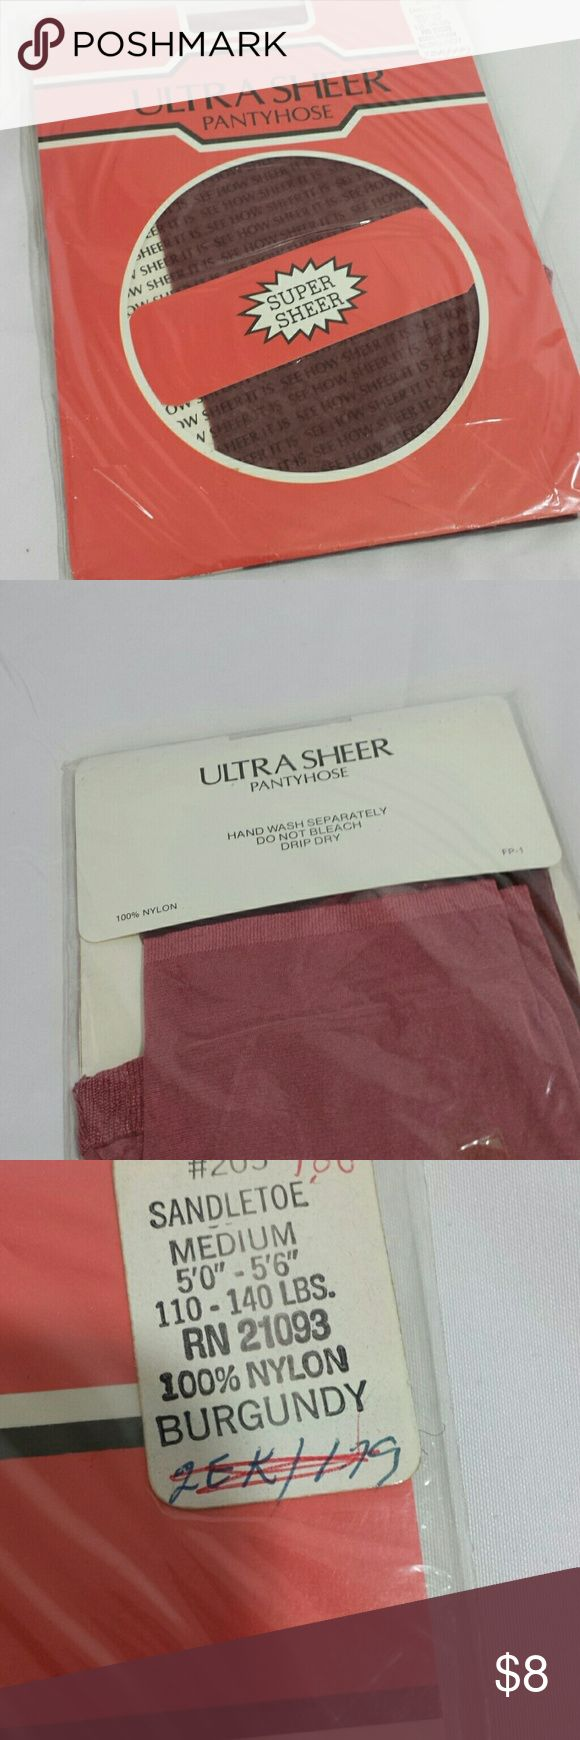 Vintage 1960s Petite Ultra Sheer Pantyhose New in package,  just old stock from the 1960s!   Great for vintage lover!  Very soft 100 nylon, burgandy color Intimates & Sleepwear